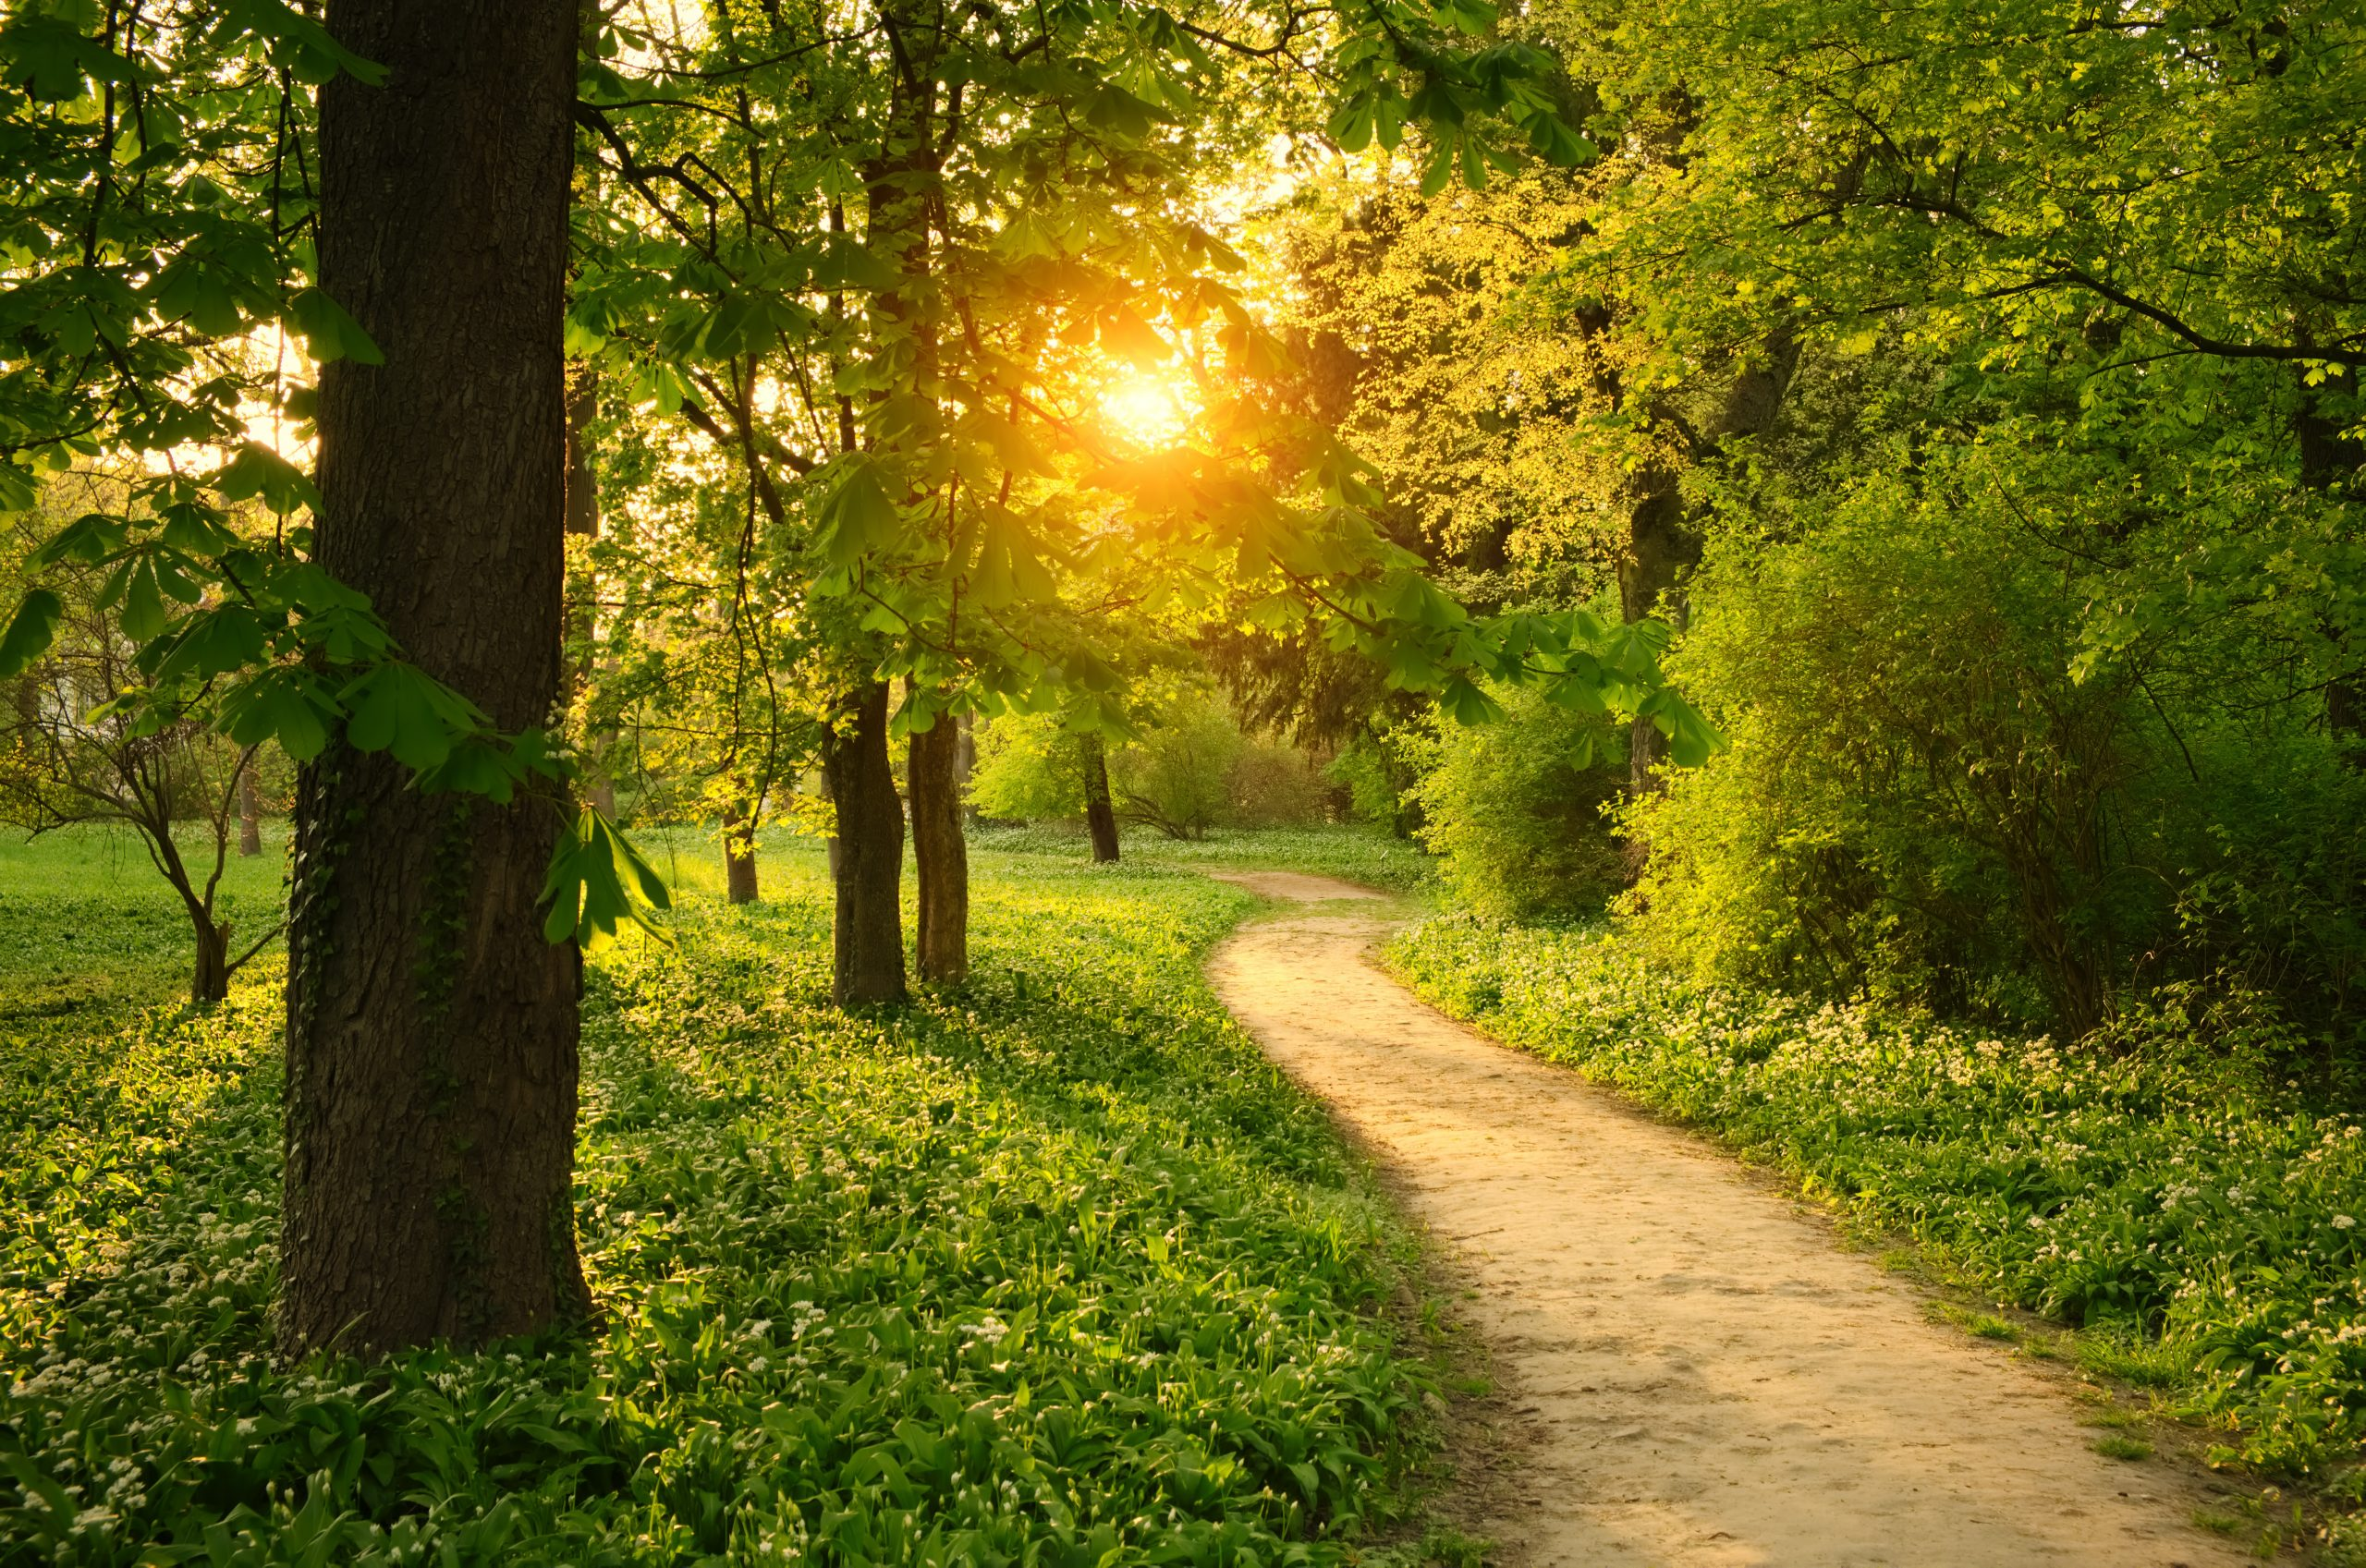 visit mulberry nature park in braselton [linux87] © 123rf